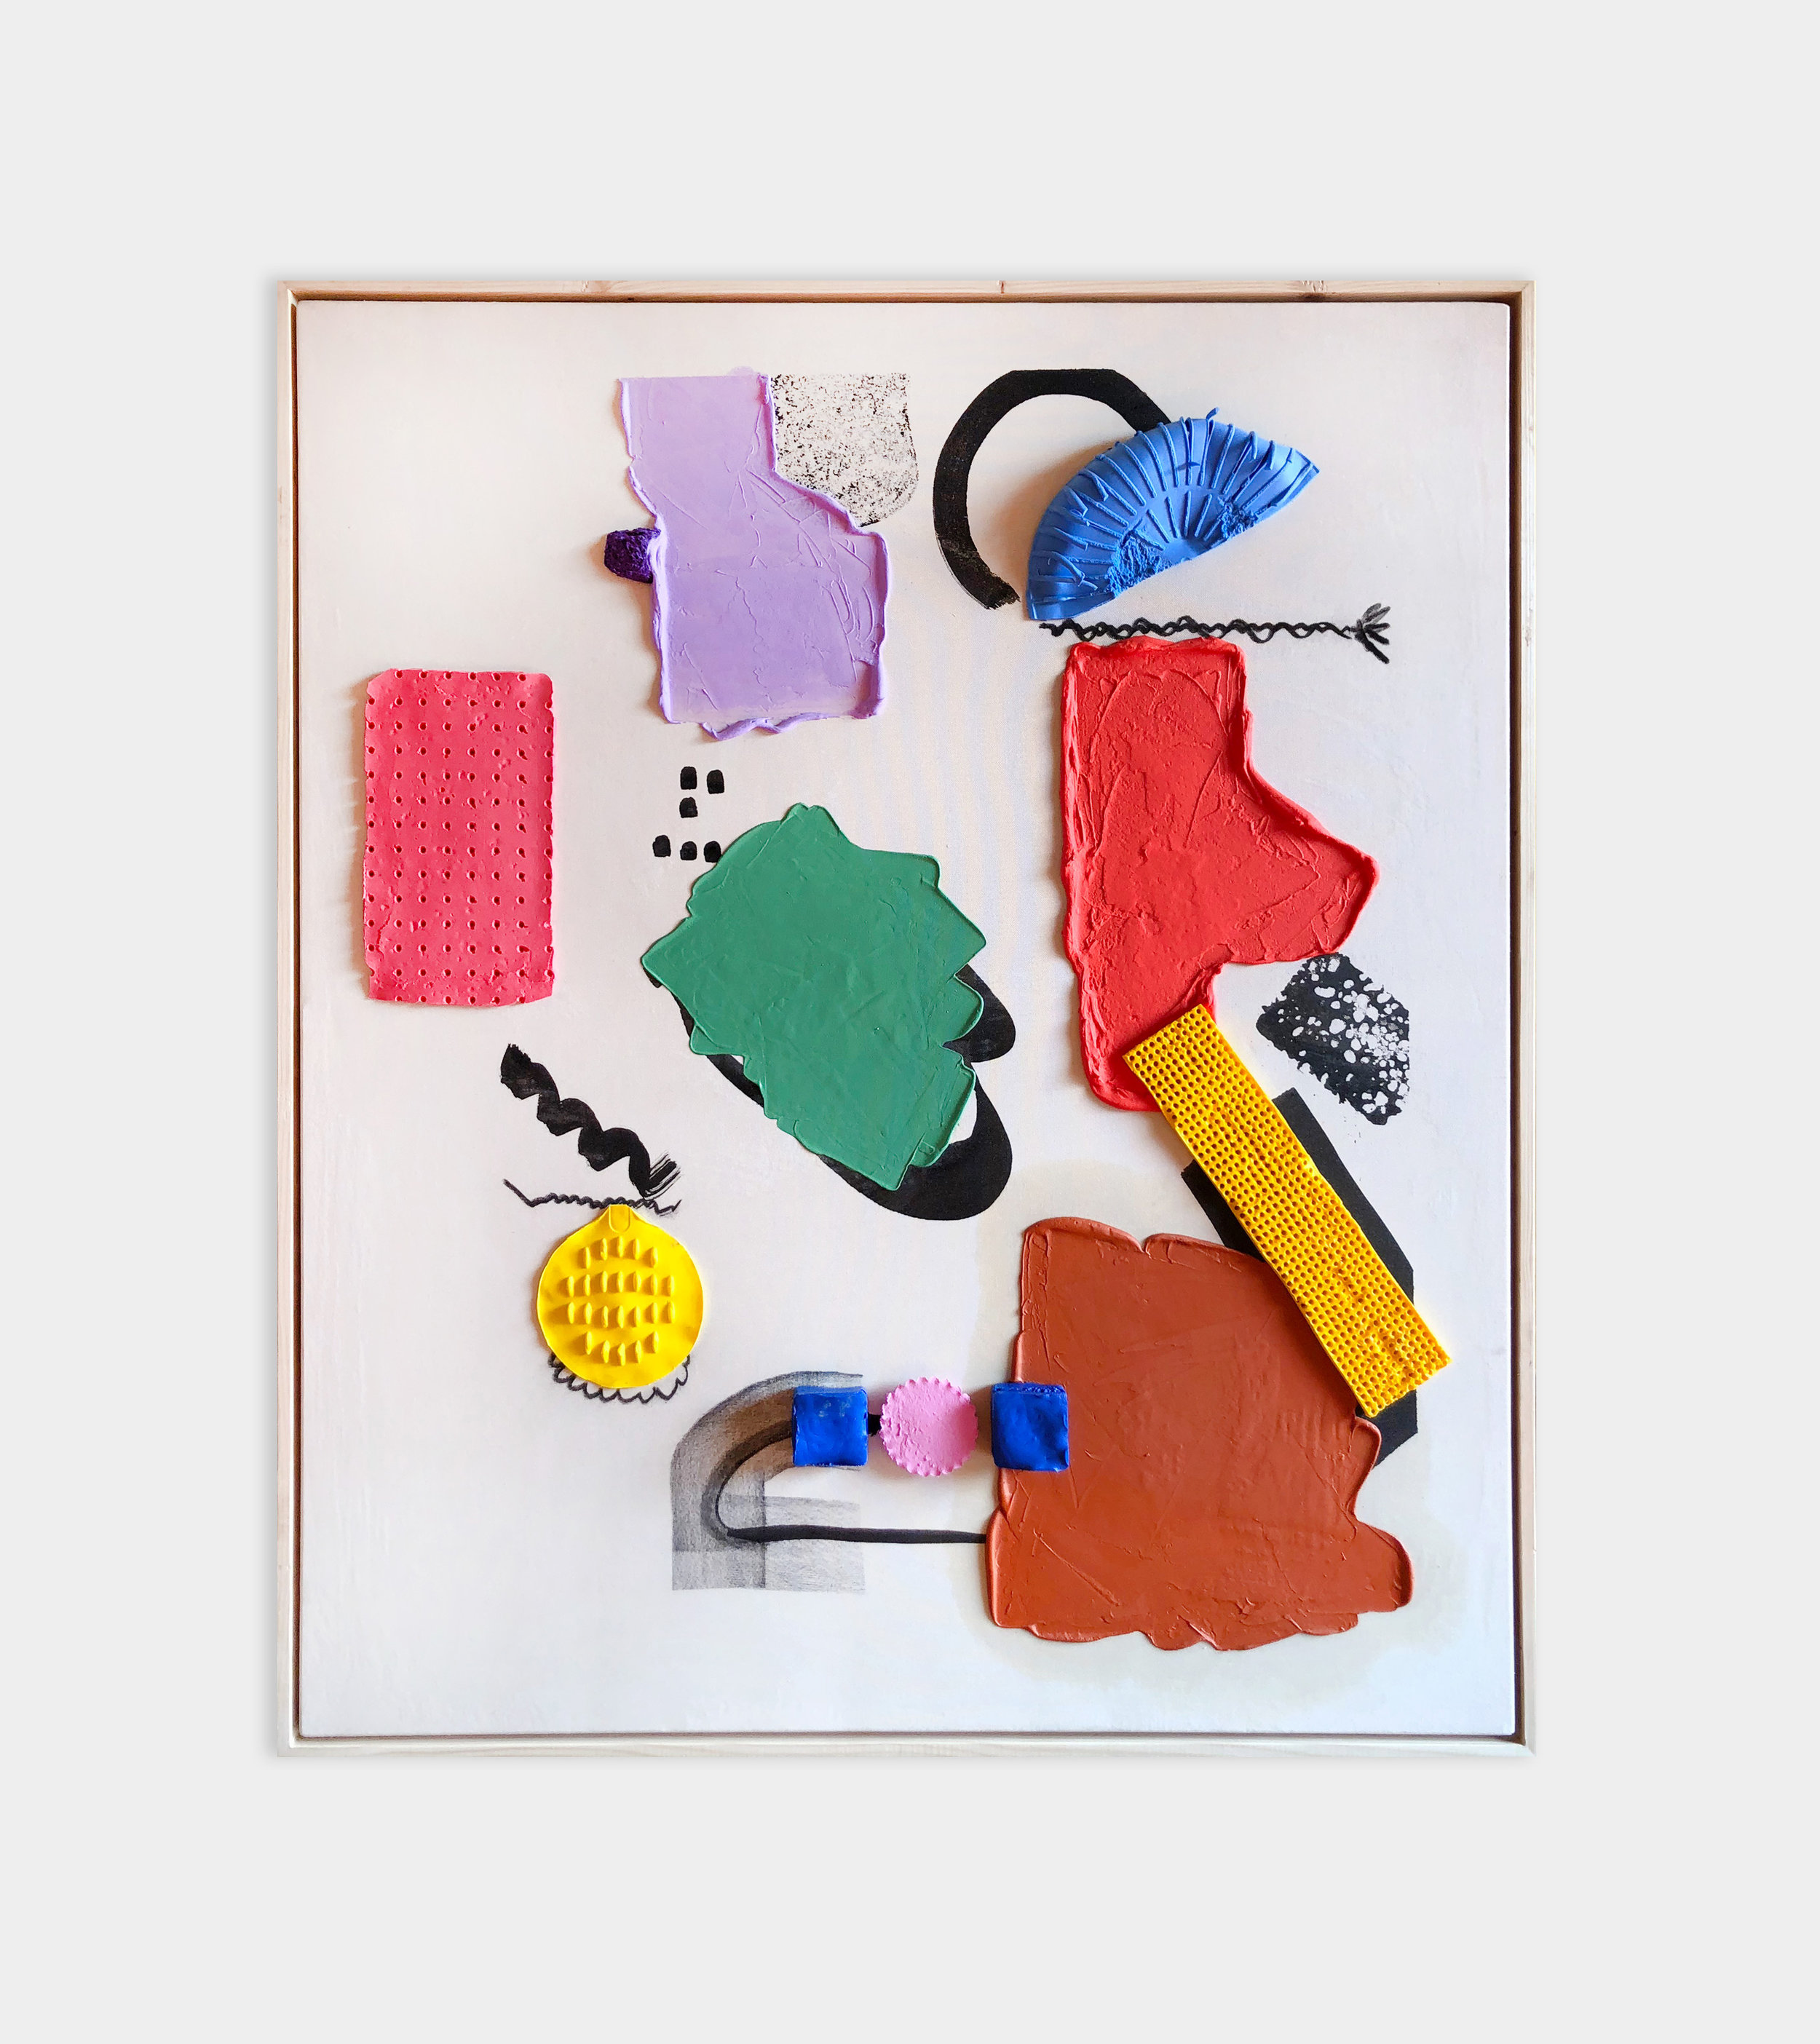 a-catalogue-of-objects.jpg